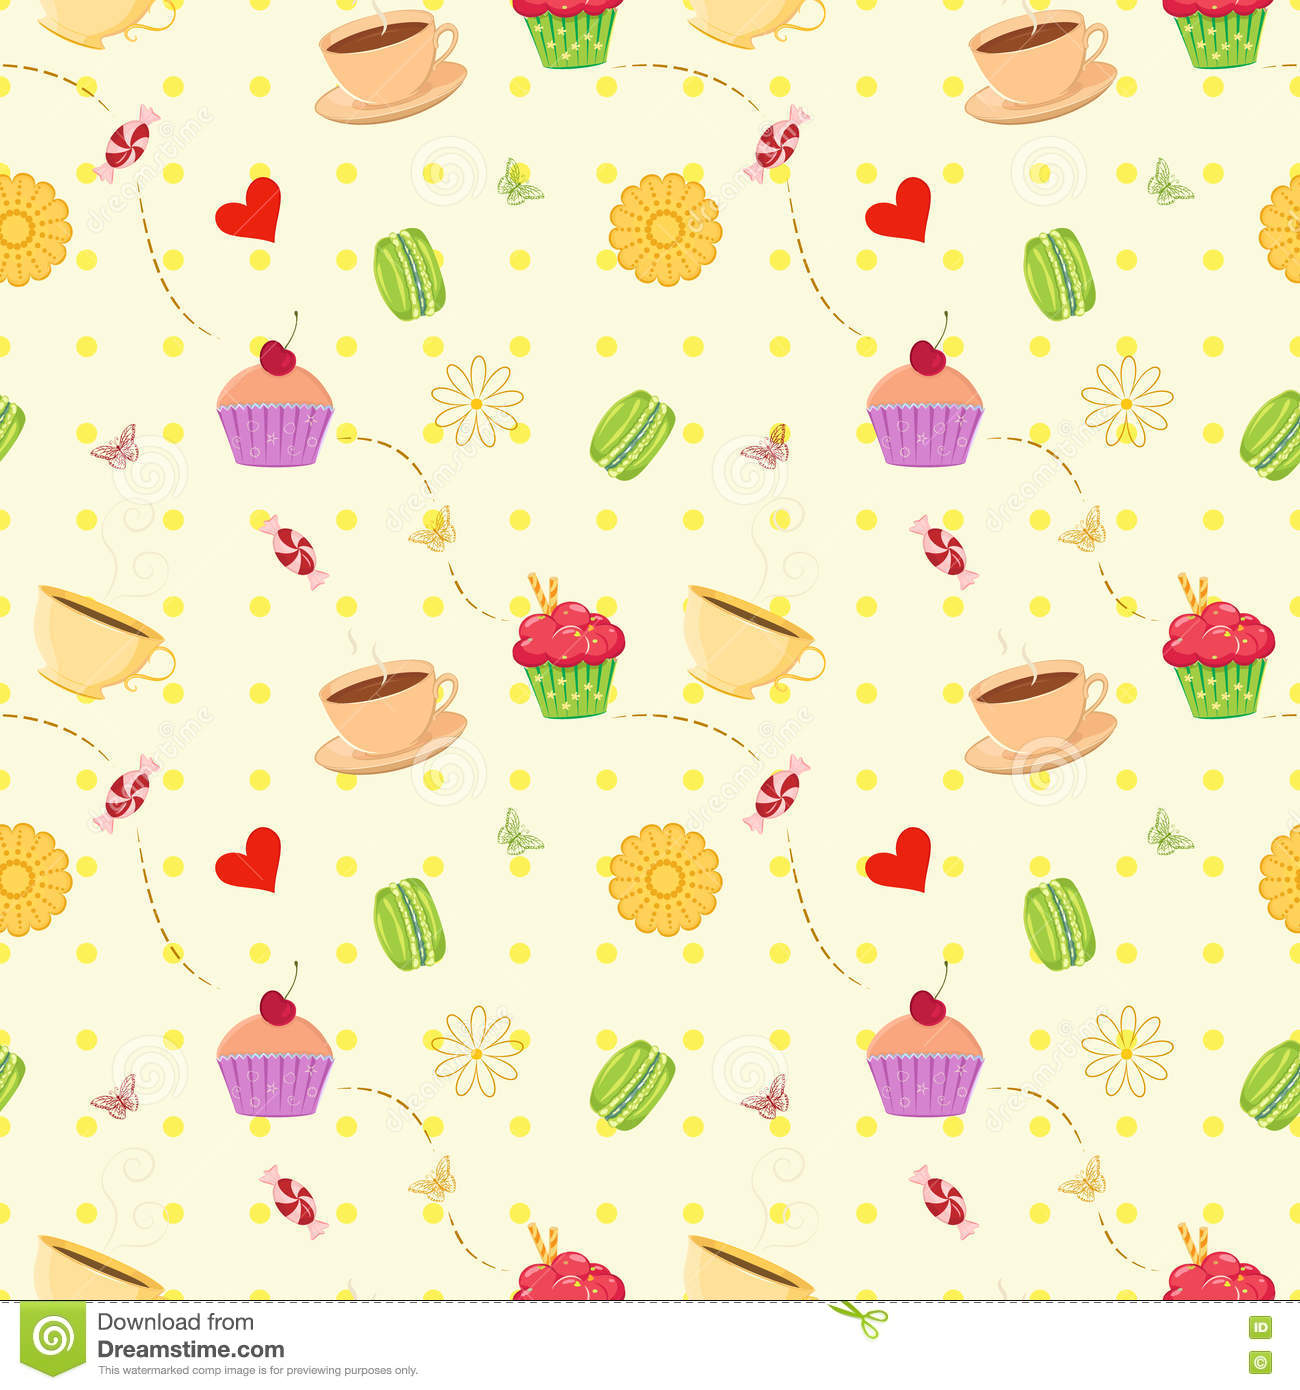 Seamless vector dessert food pattern with cupcakes, macaroons an